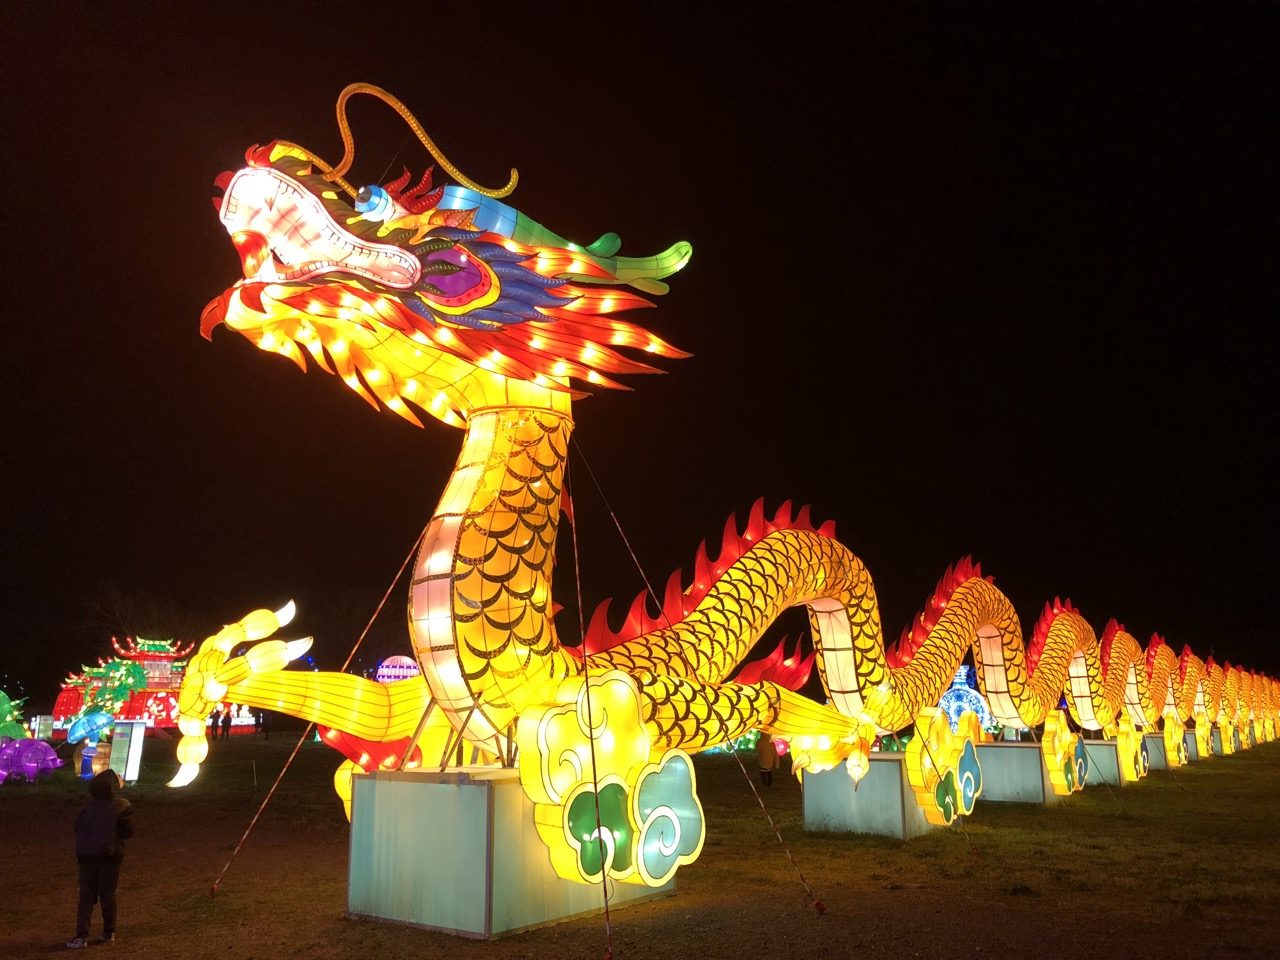 The Lantern Light Festival in Vallejo is a Magical Evening ...